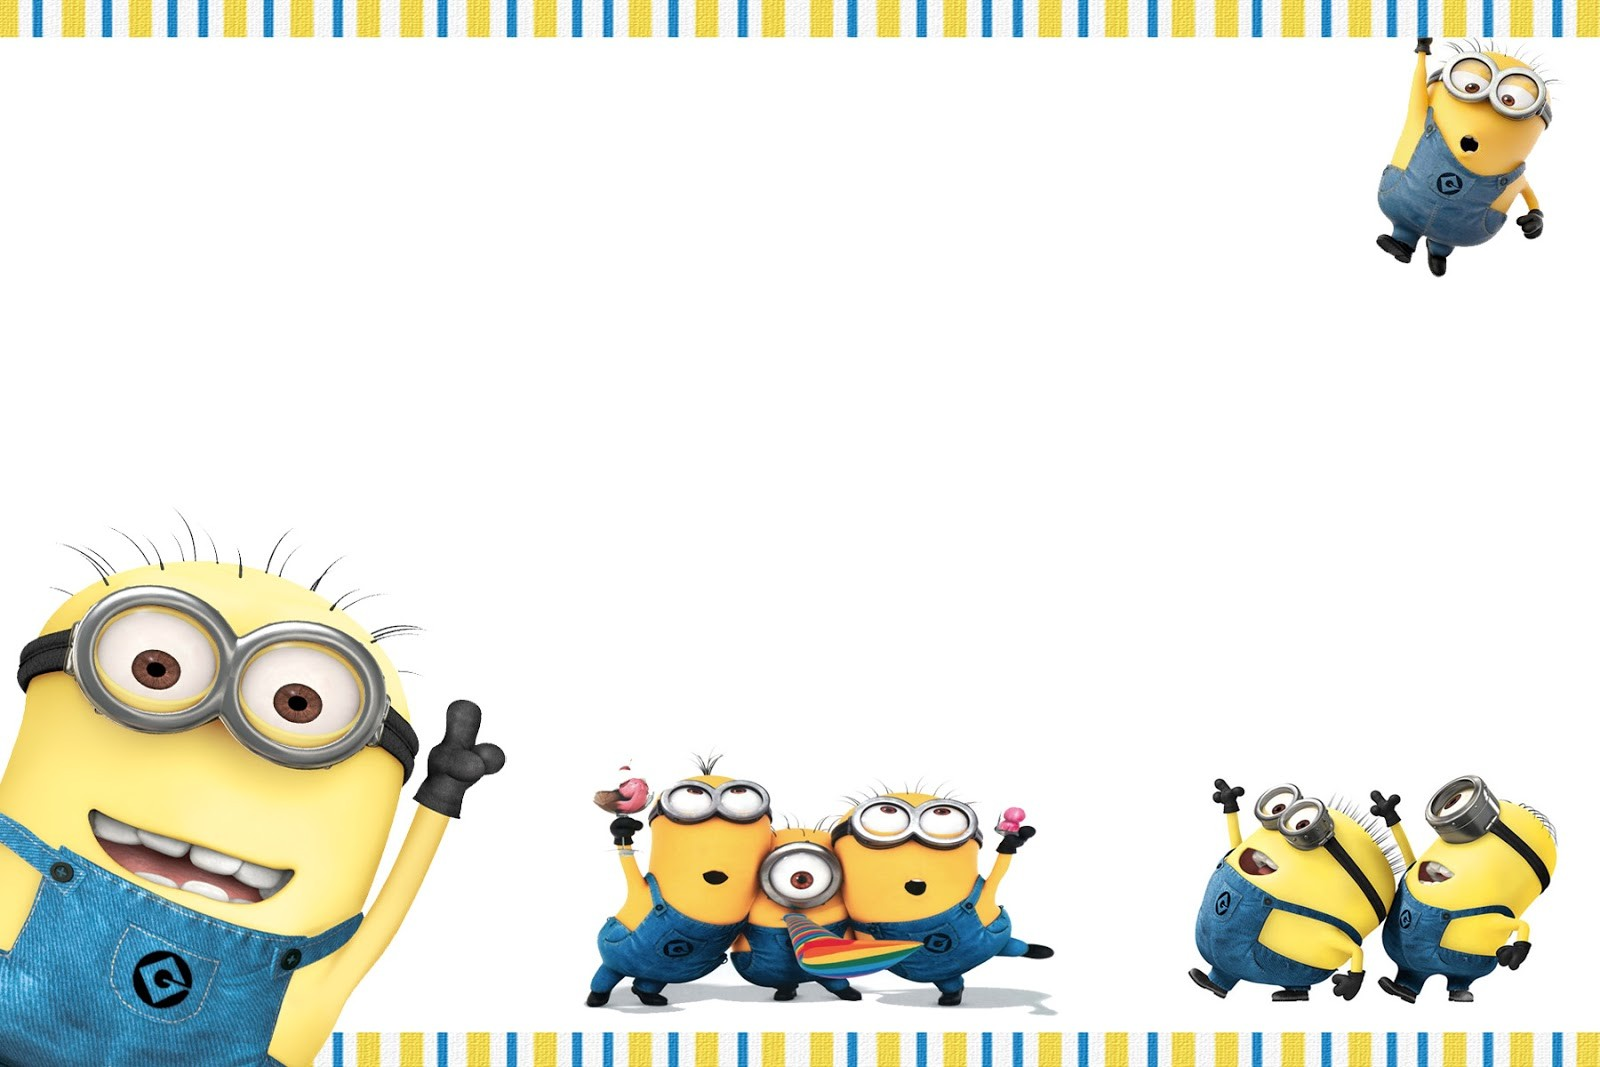 minion themed birthday invitation template ; invitation-templates-nz-inspirationalnew-how-to-create-minion-birthday-invitations-templates-ideas